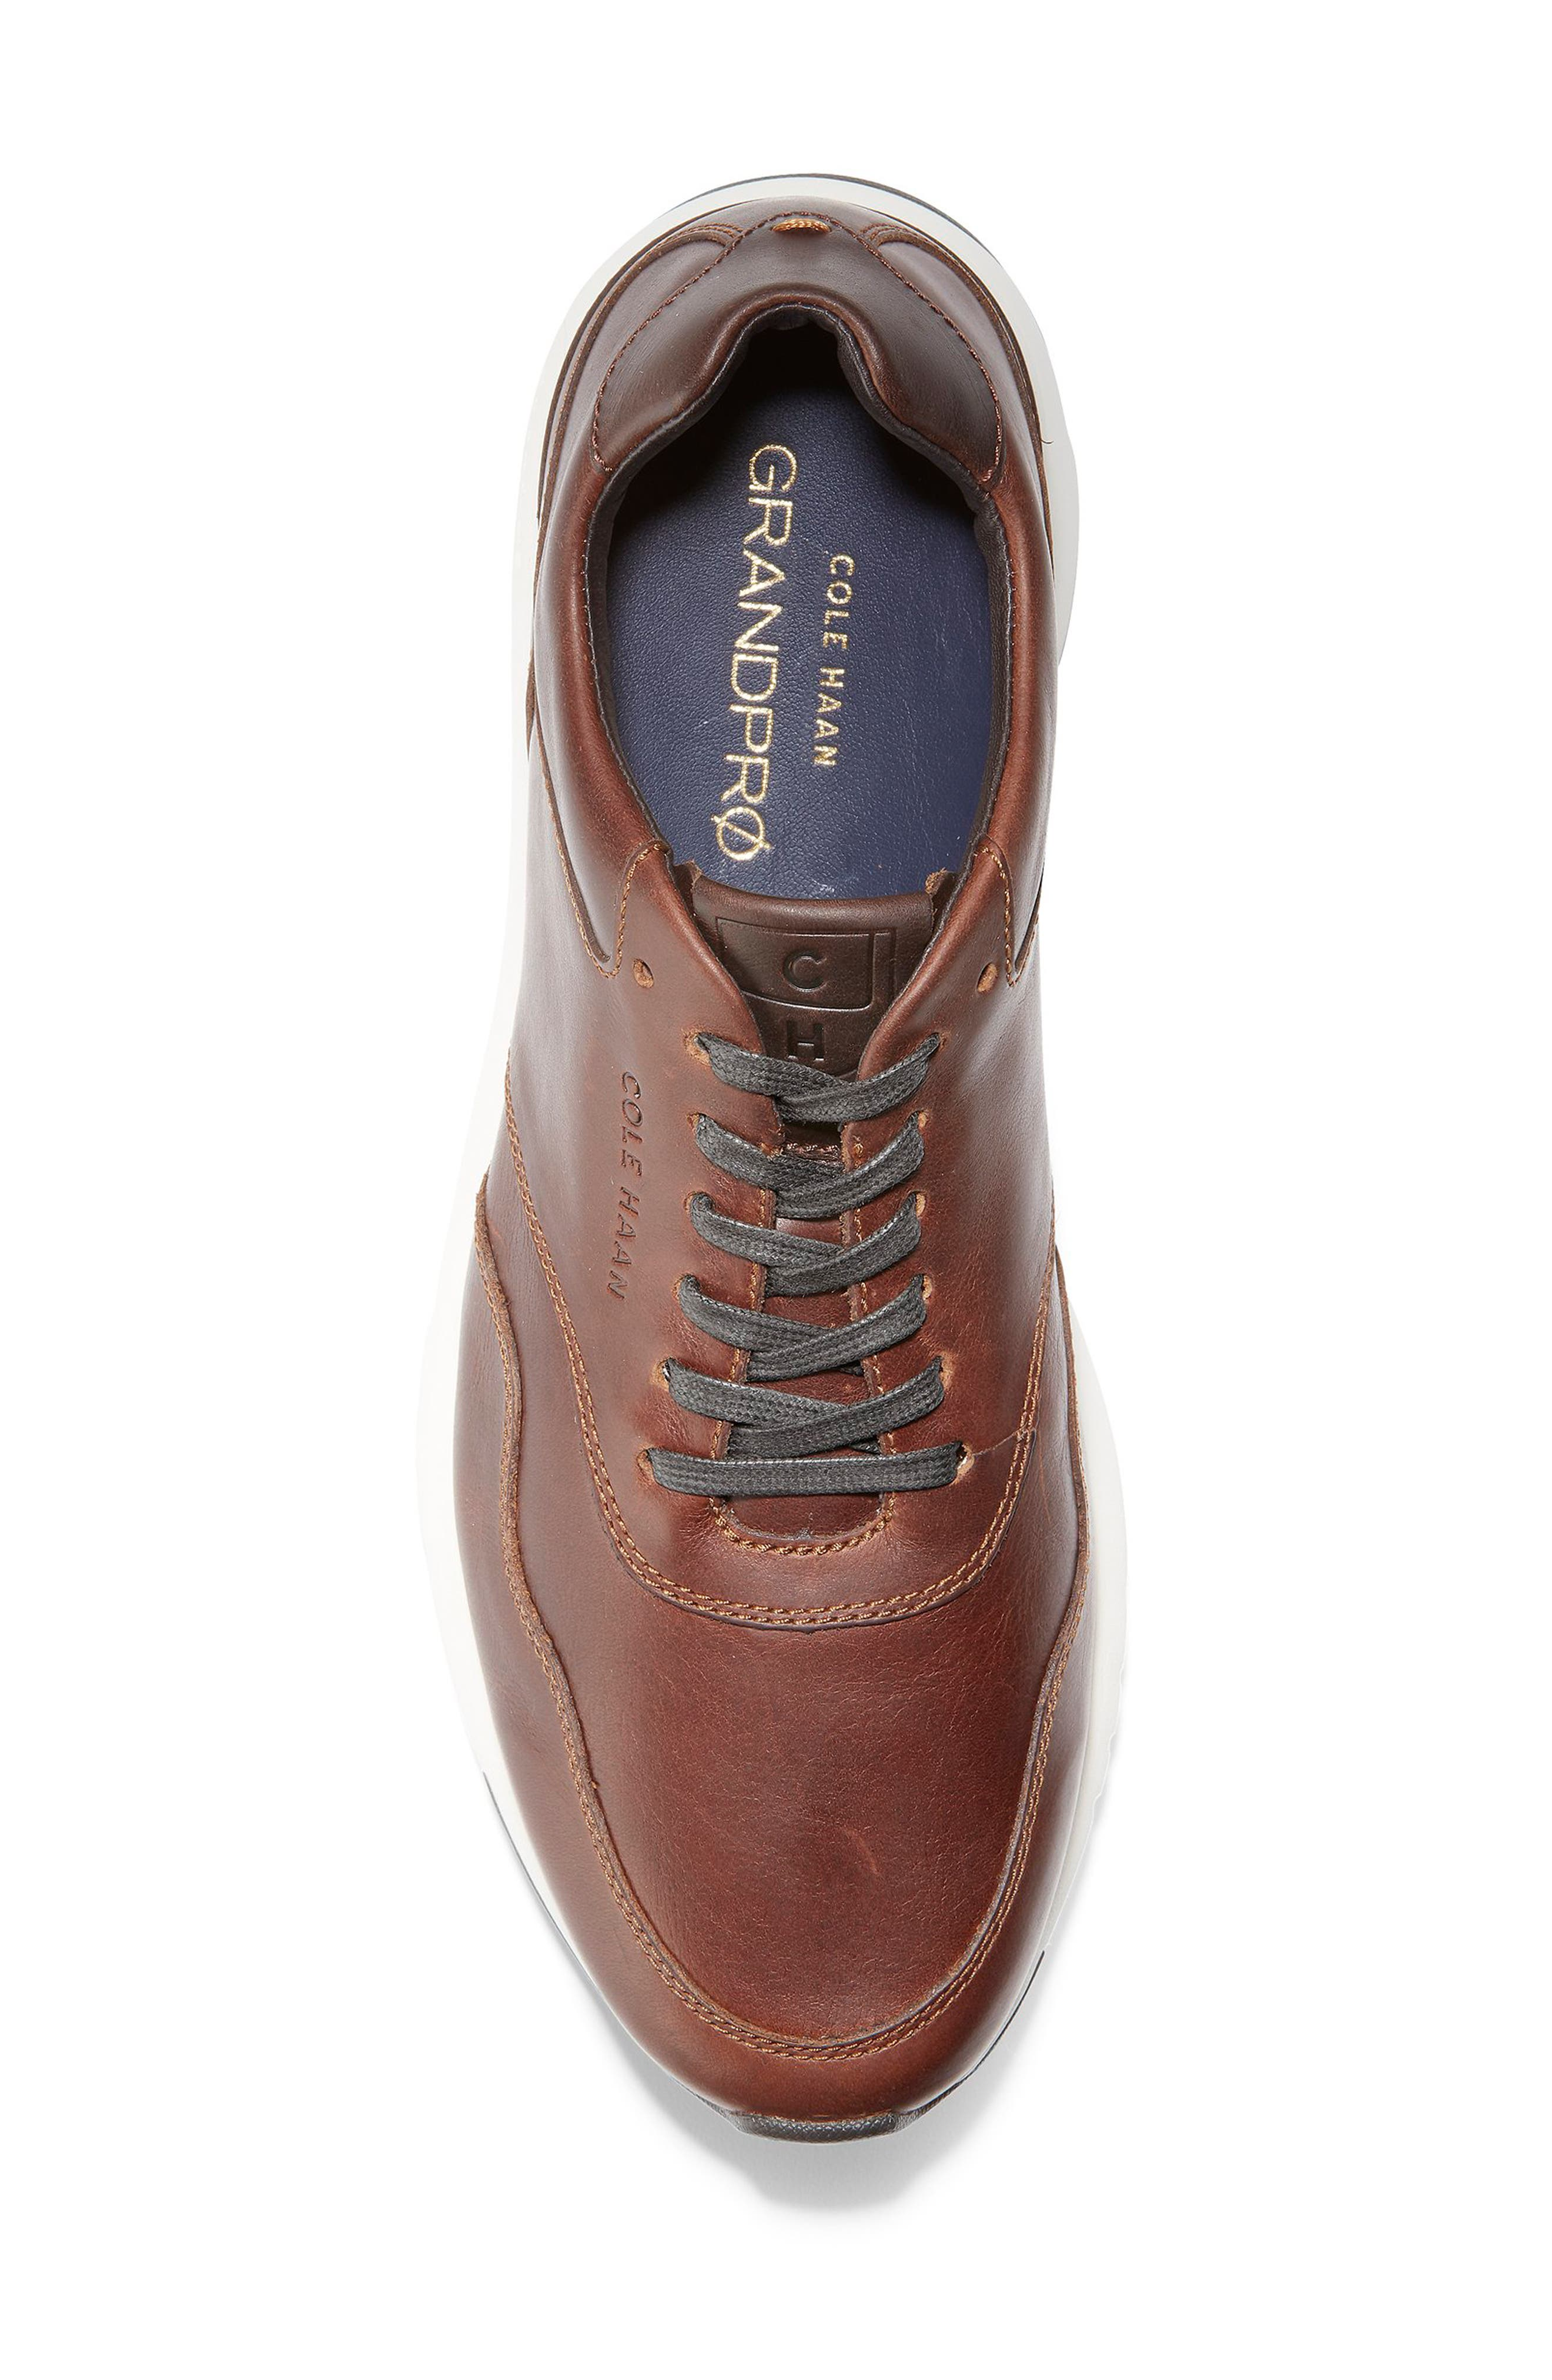 GrandPro Sneaker,                             Alternate thumbnail 5, color,                             MESQUITE/ COFFEE LEATHER